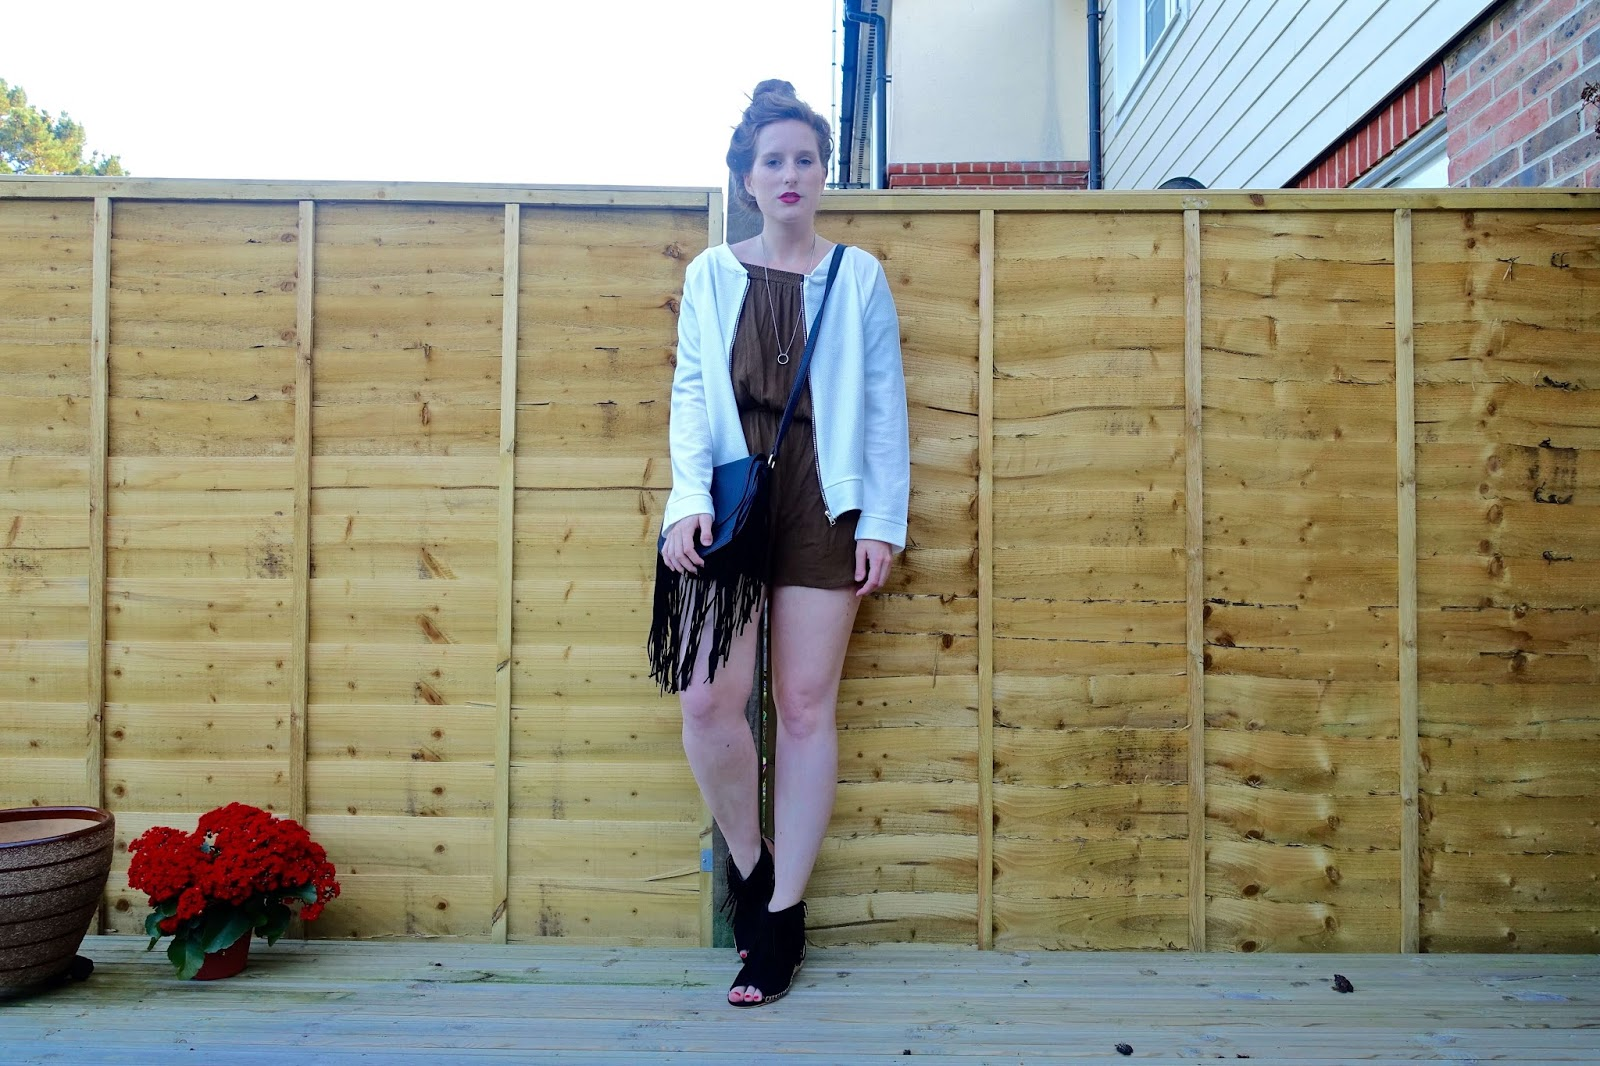 rightupmystreet UK fashion blogger